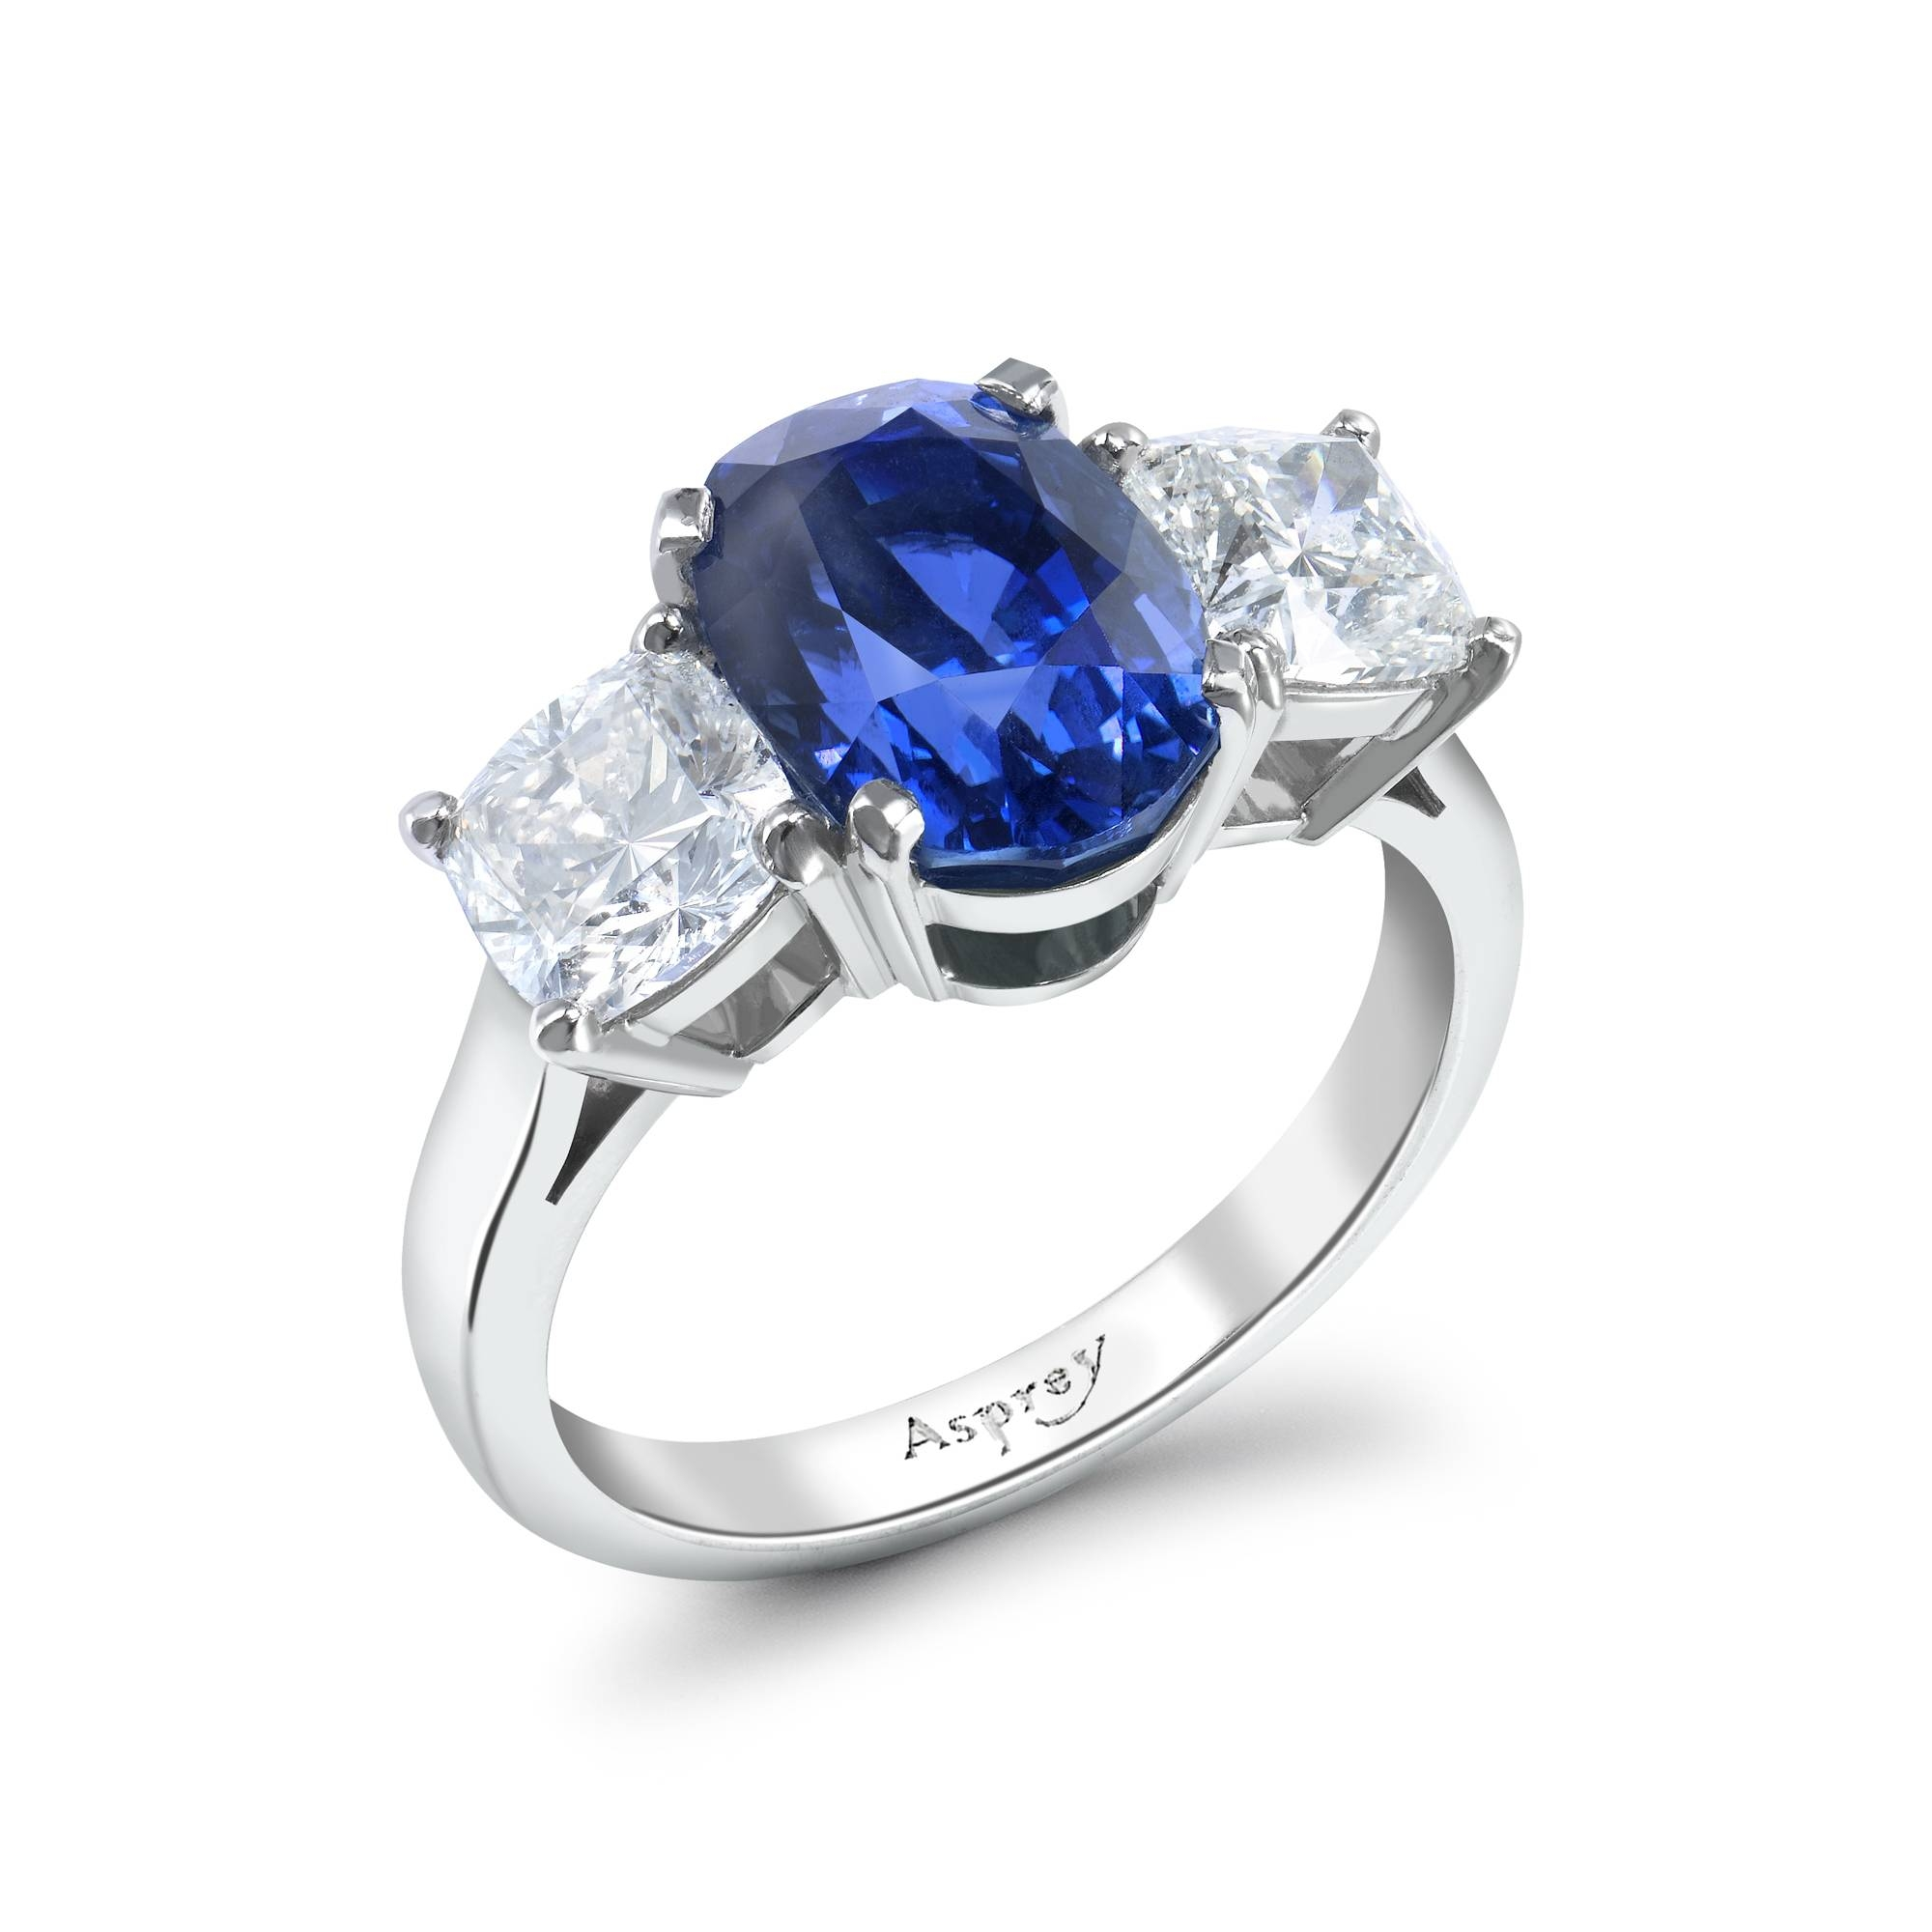 Engagement Rings : B Sbv Loveme Beautiful Engagement Ring Sapphire Throughout Saffire Engagement Rings (View 3 of 15)